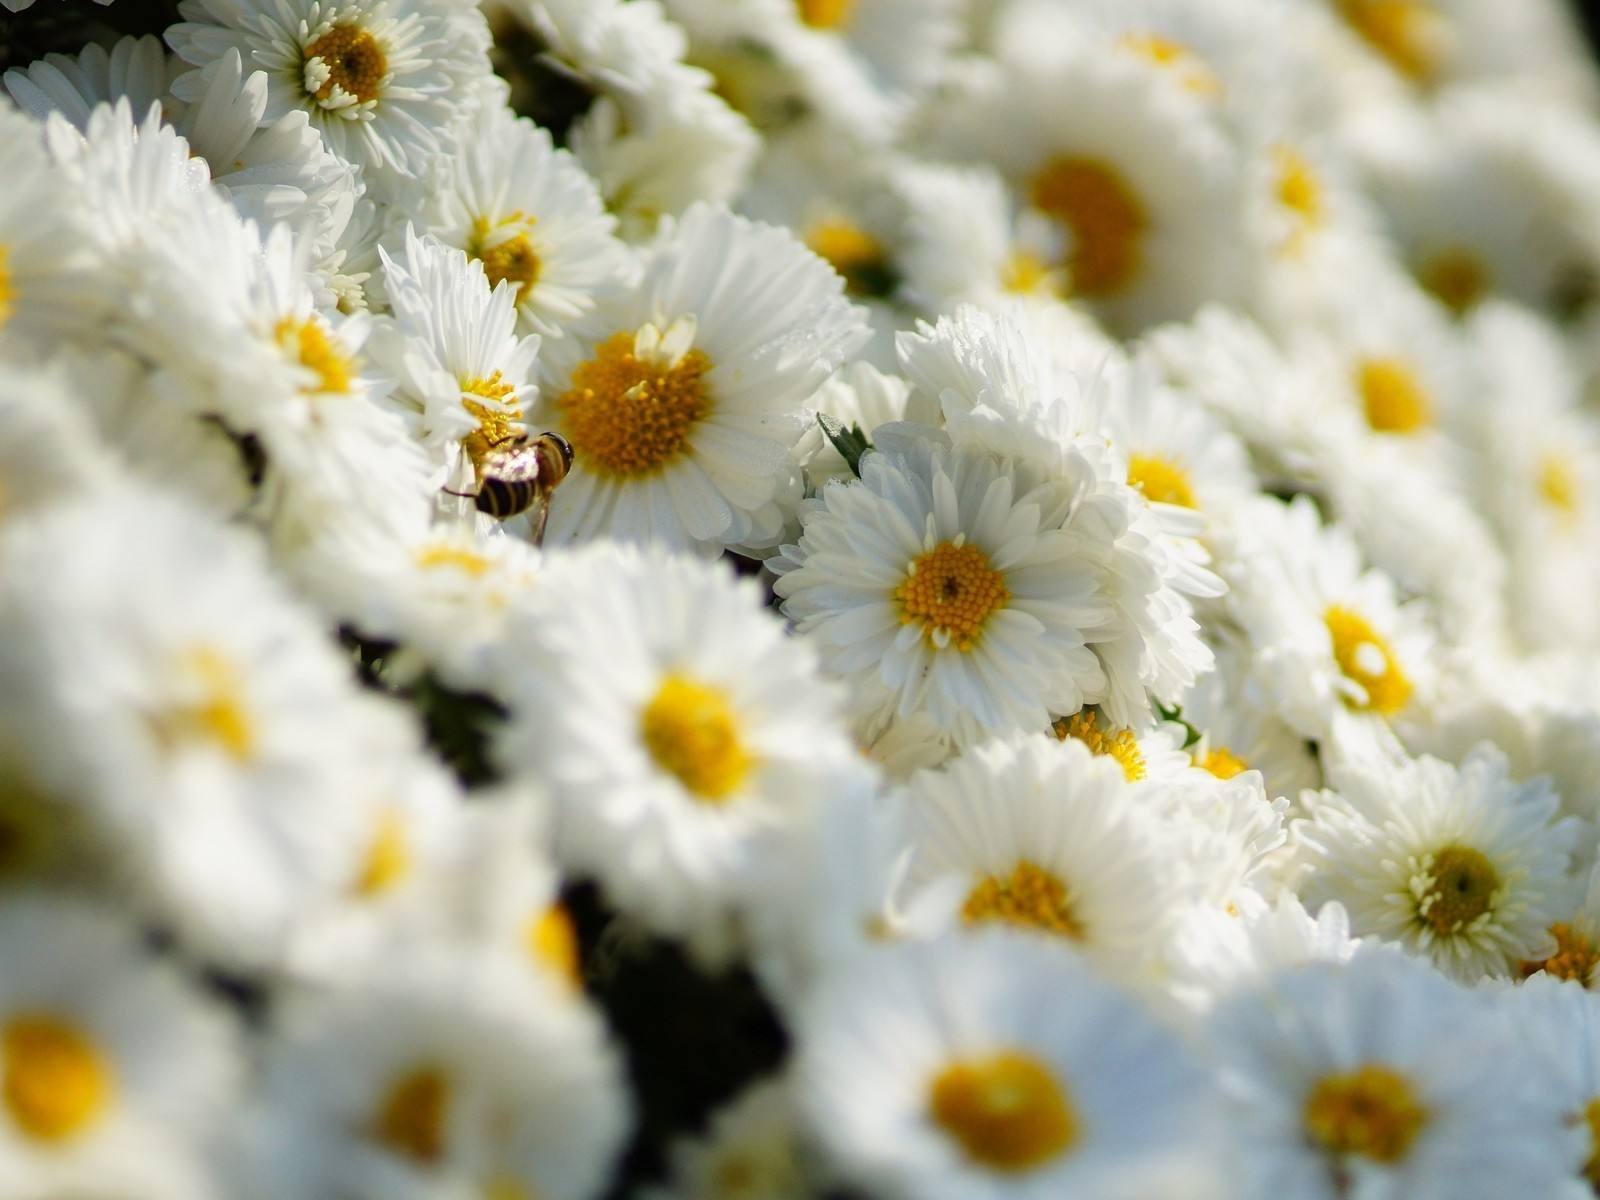 chrysanthemum nature flower flora summer bright floral leaf season garden field petal blooming color close-up chamomile hayfield beautiful bed bouquet